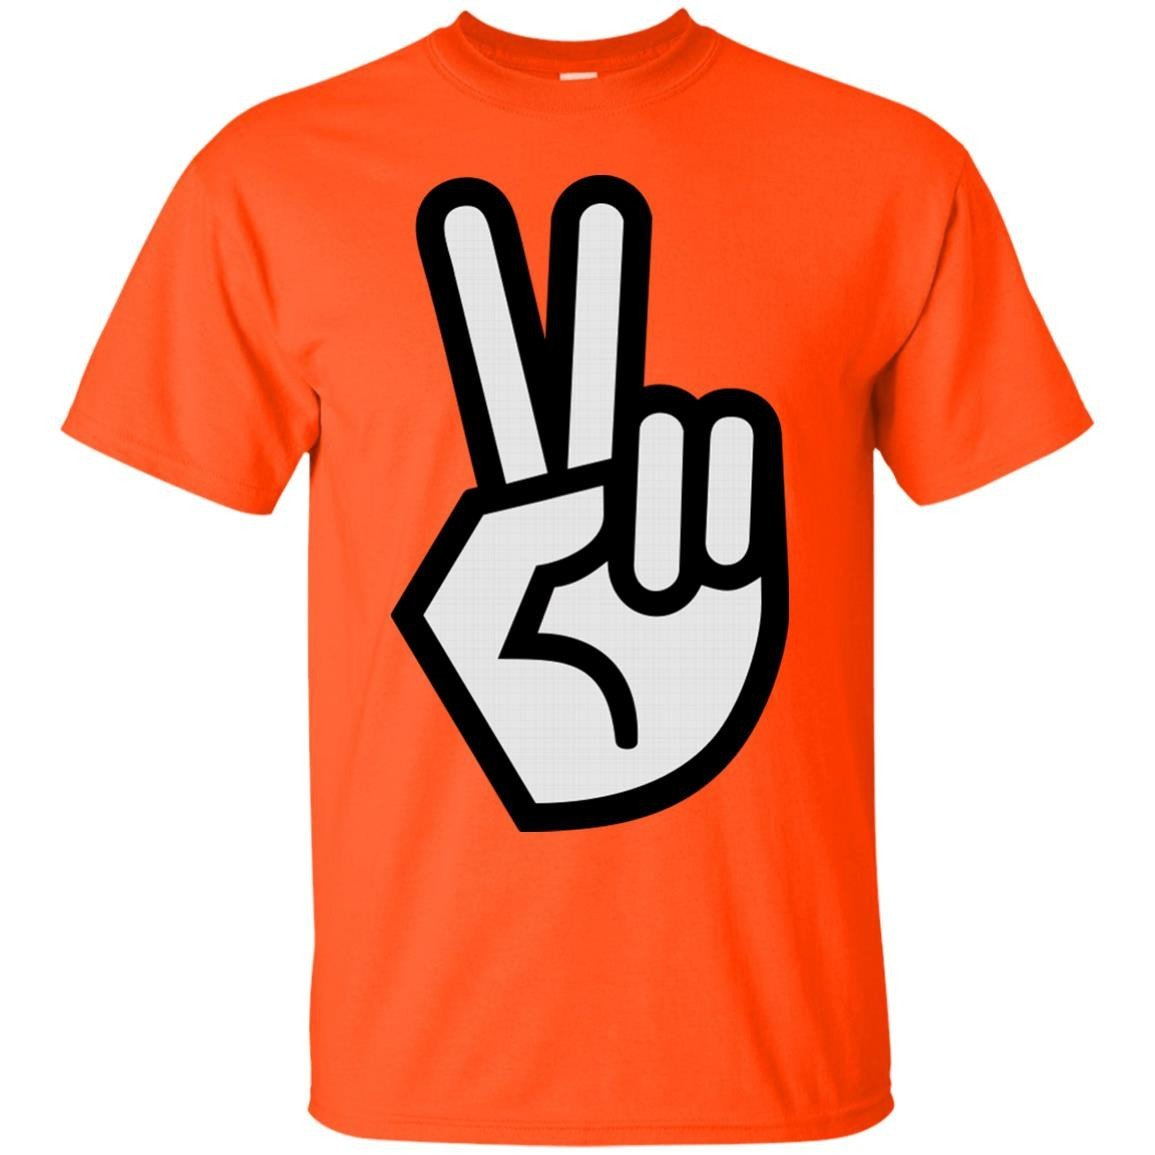 peace sign design t-shirt for men red t-shirt peace fingers